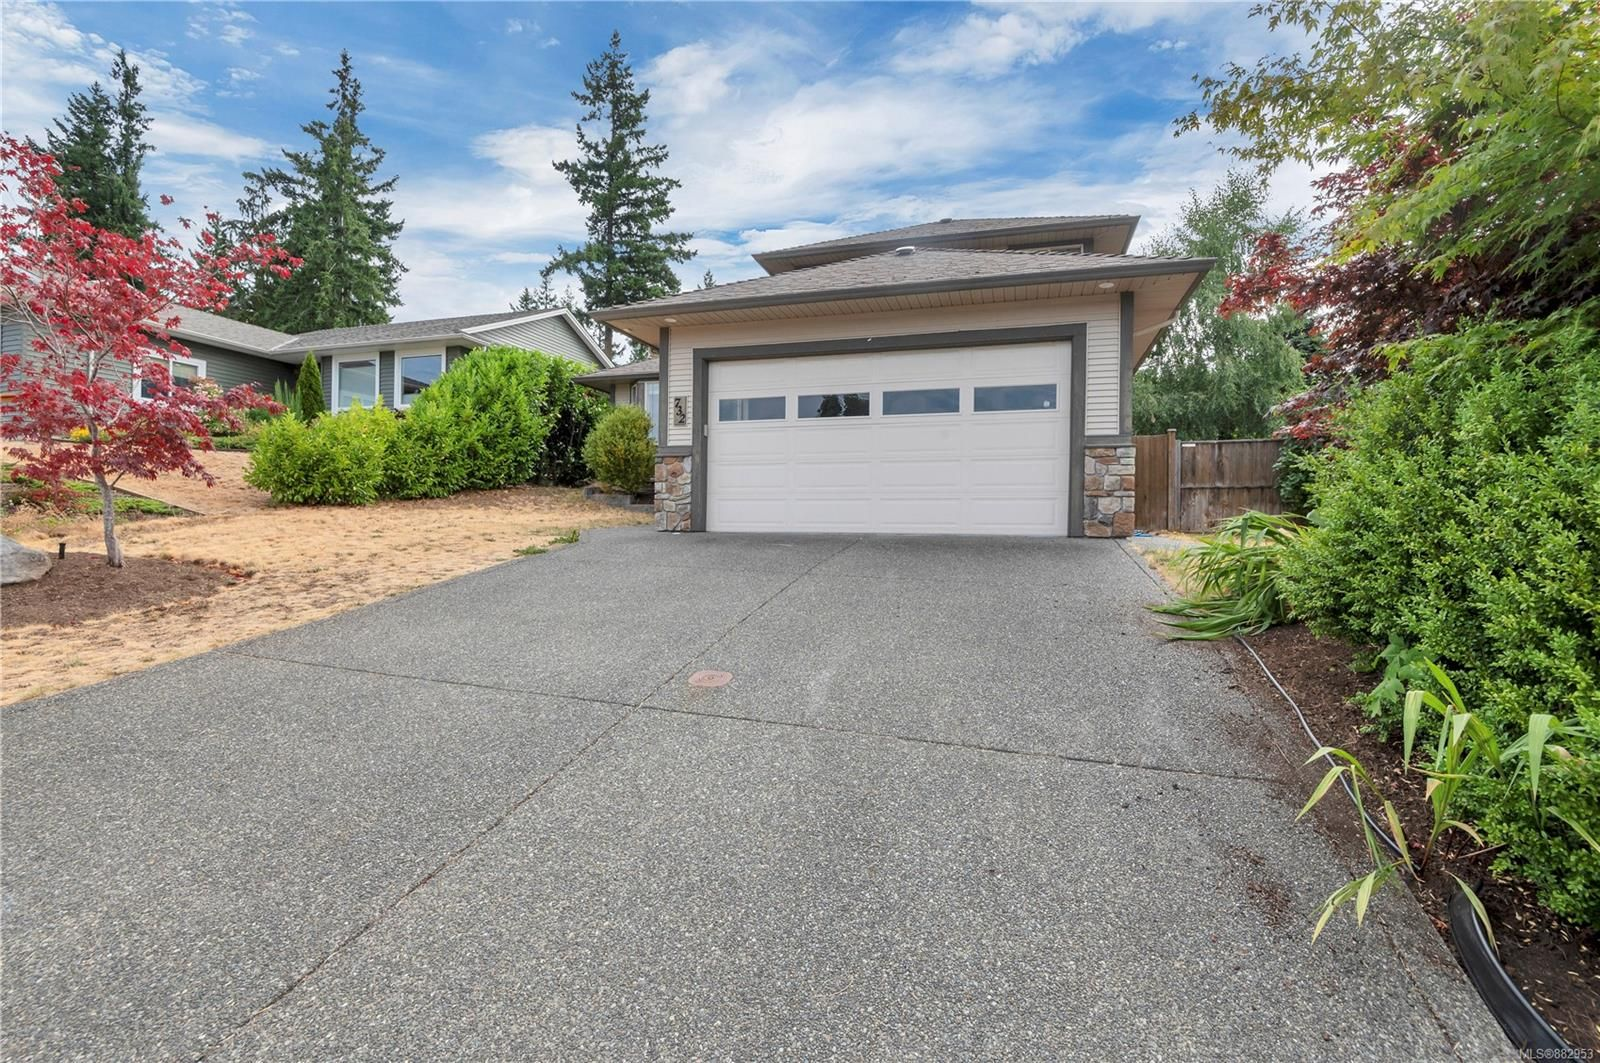 Photo 3: Photos: 732 Oribi Dr in : CR Campbell River Central House for sale (Campbell River)  : MLS®# 882953